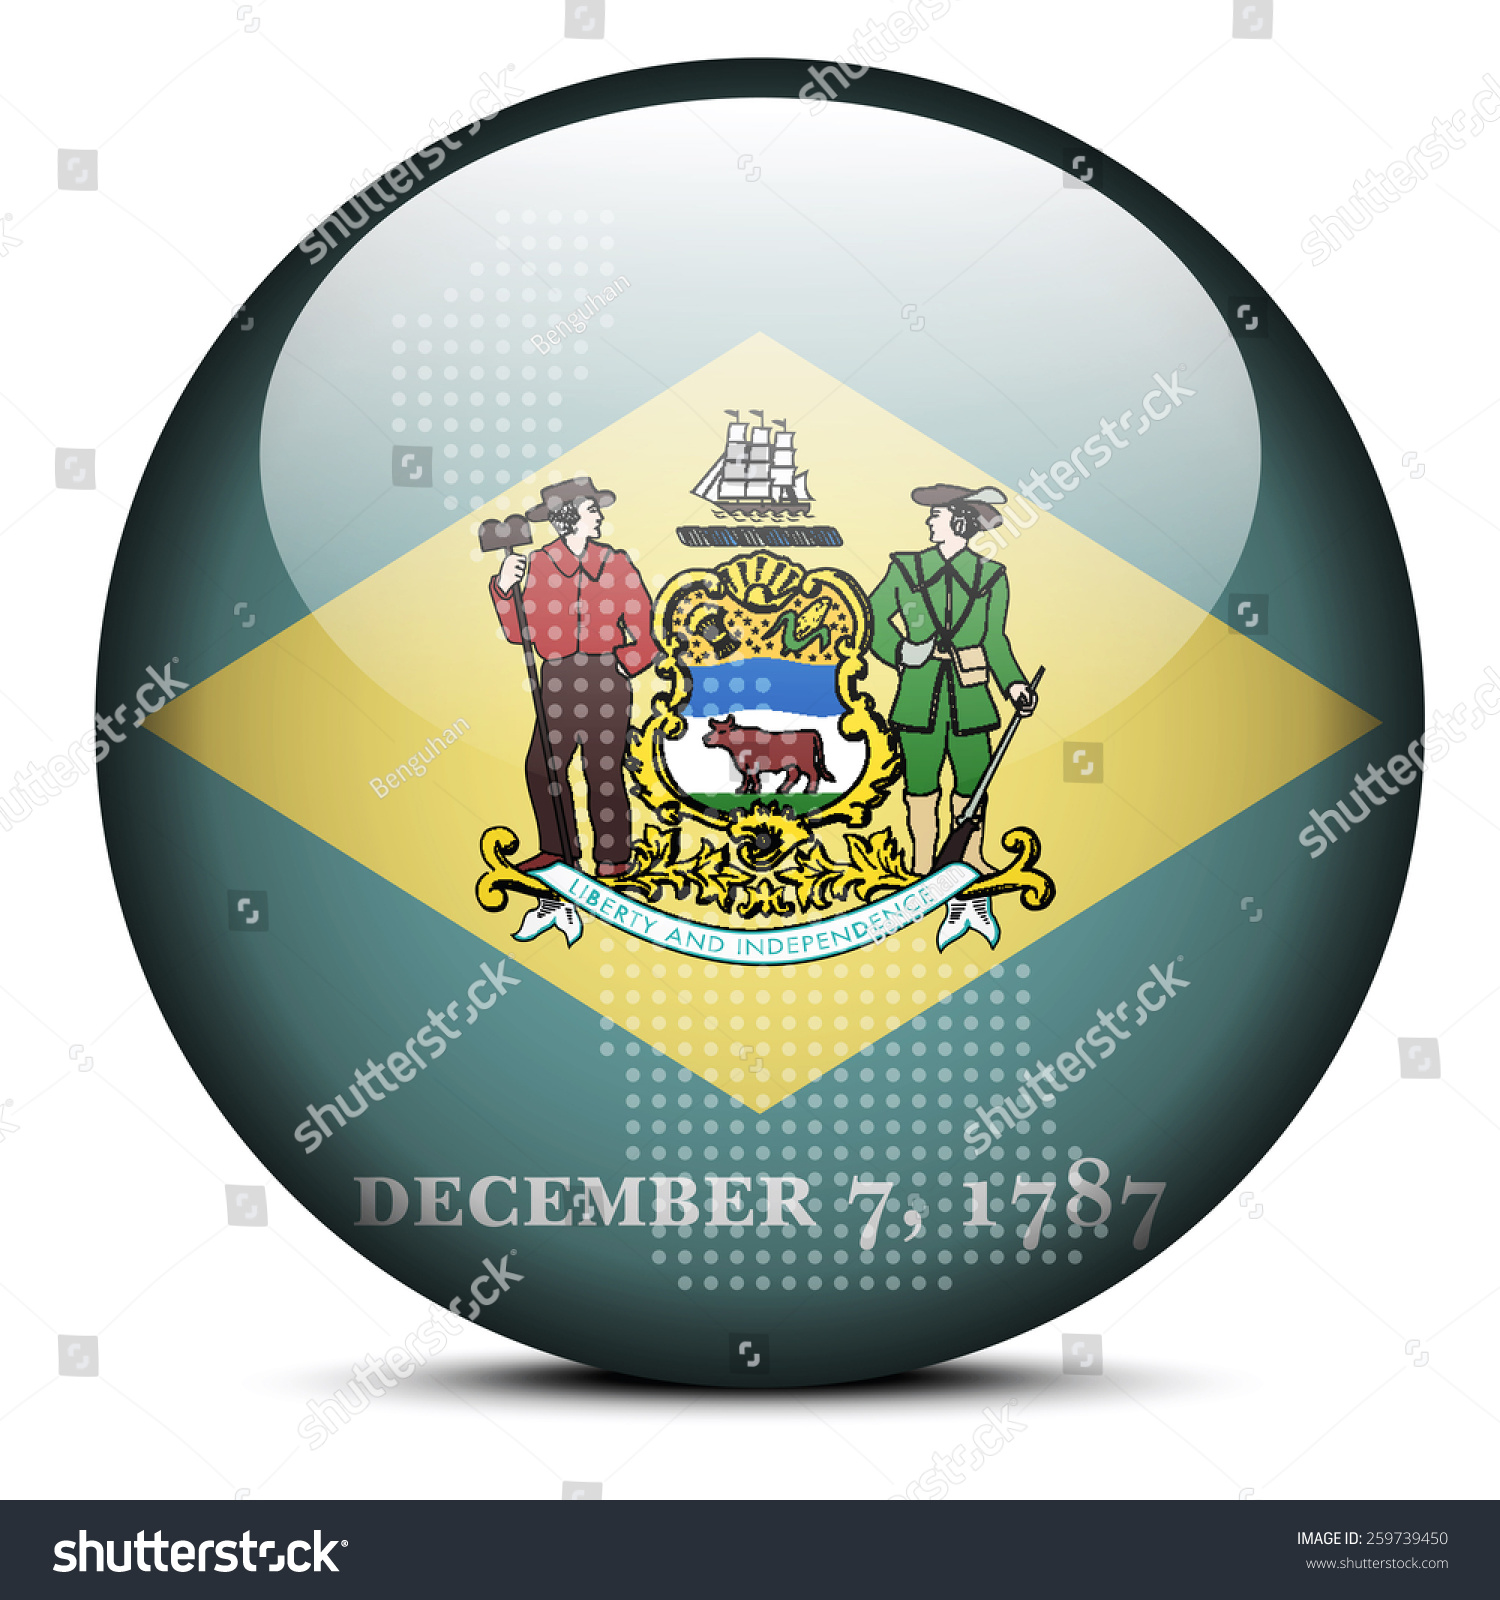 map on flag button usa delaware stock vector 259739450 shutterstock stock vector map on flag button